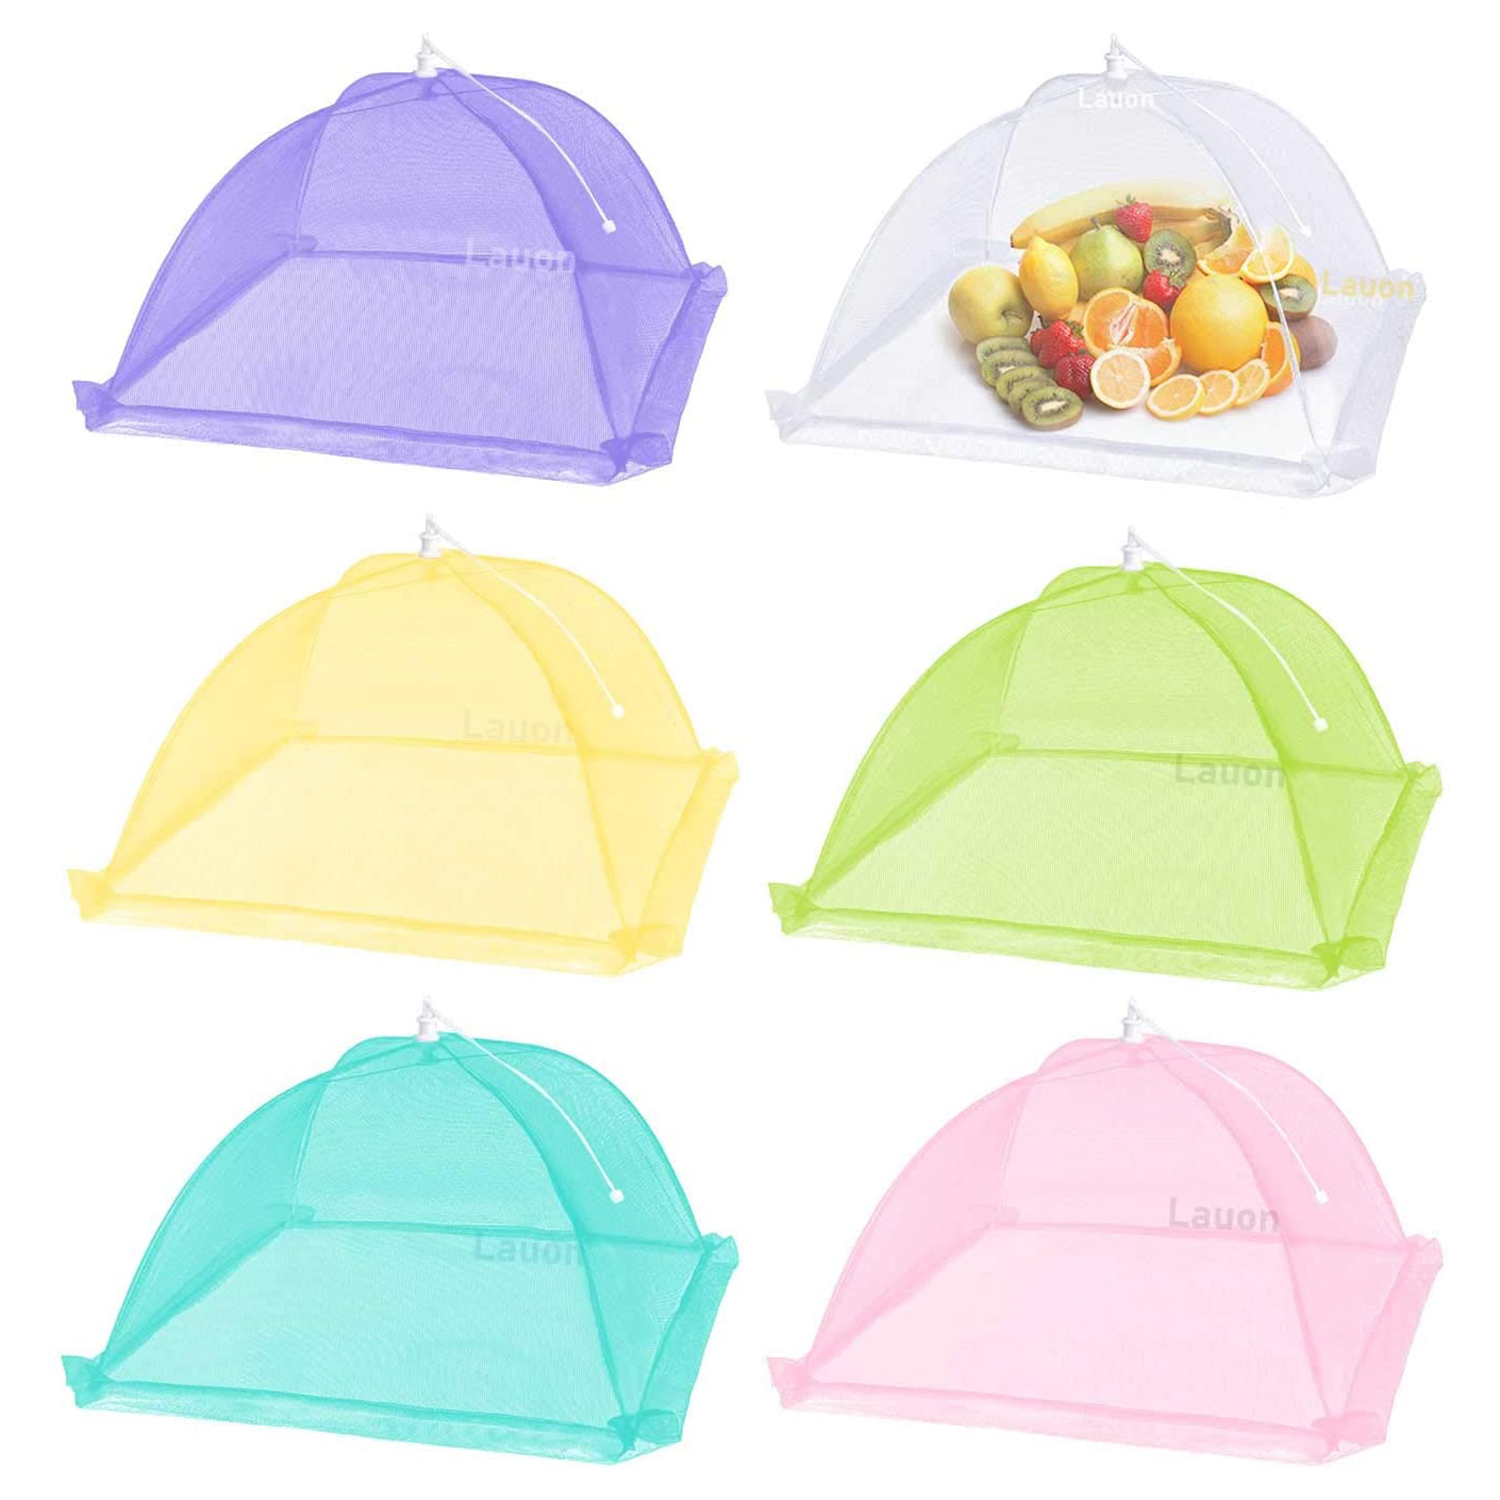 Lauon Food Cover Mesh Food Tent